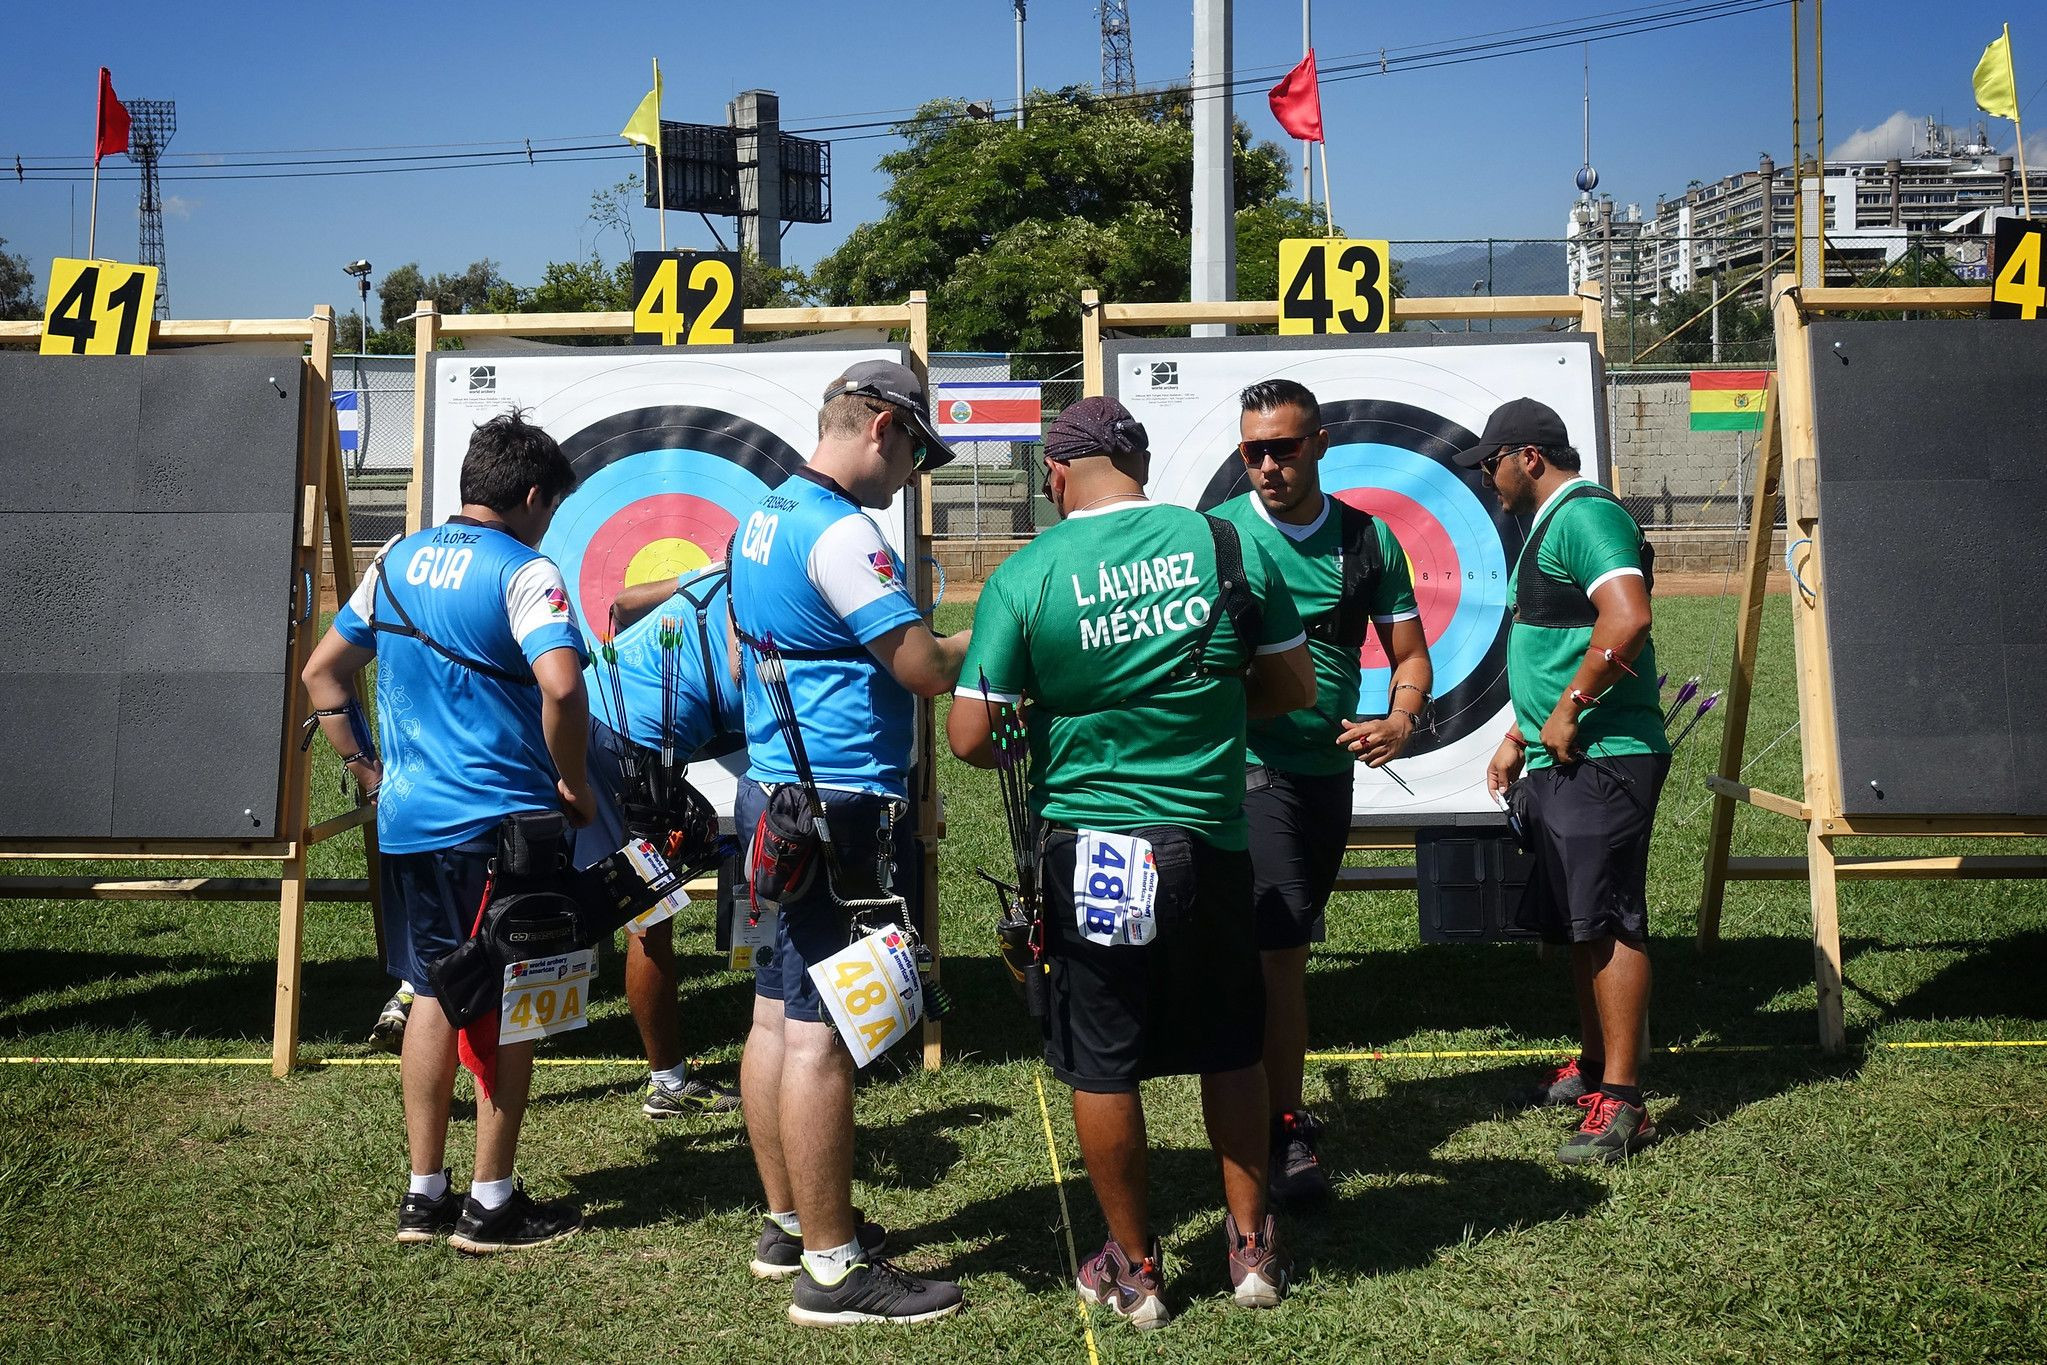 Team action took centre stage in Colombia on day two ©World Archery